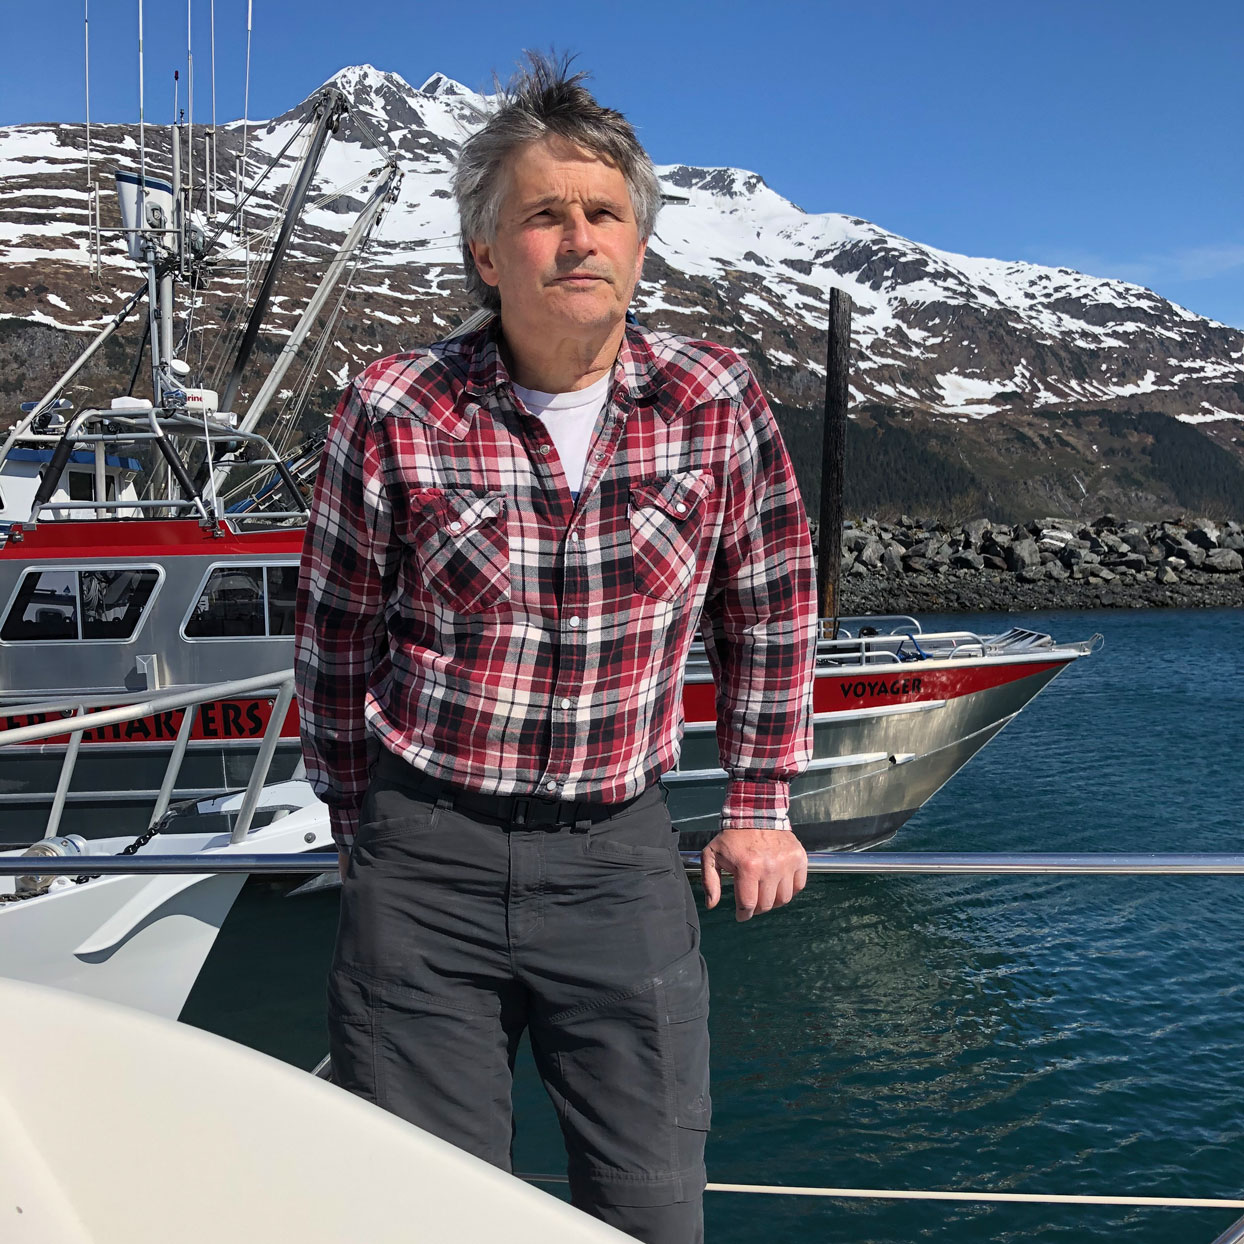 man infront of body of water on boat